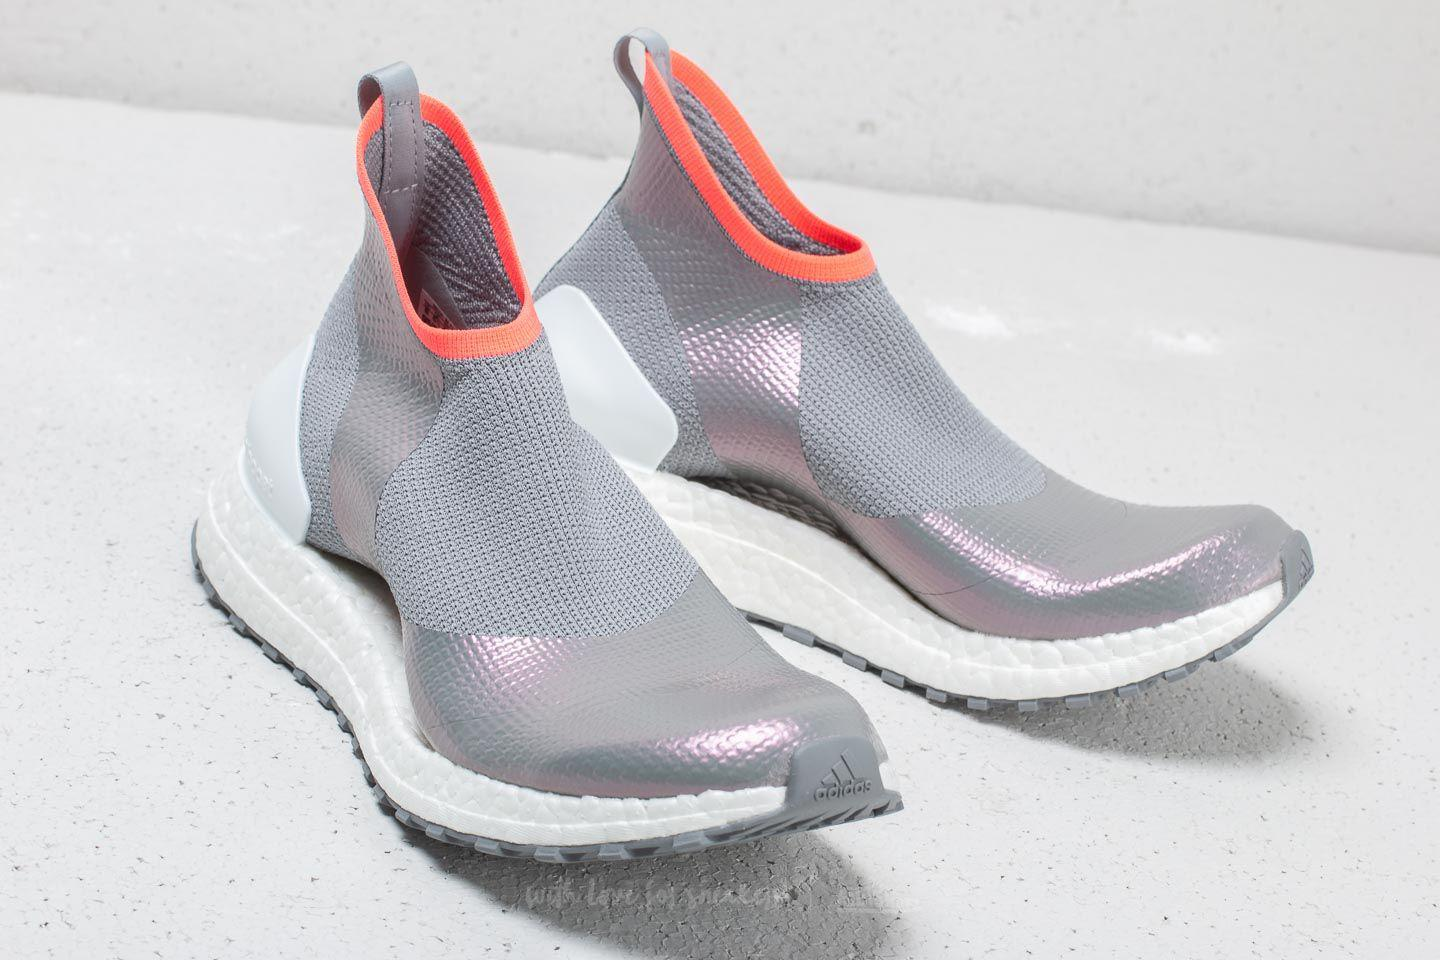 1860feb148bae Lyst - Footshop Adidas X Stella Mccartney Ultraboost X All Terrain ...